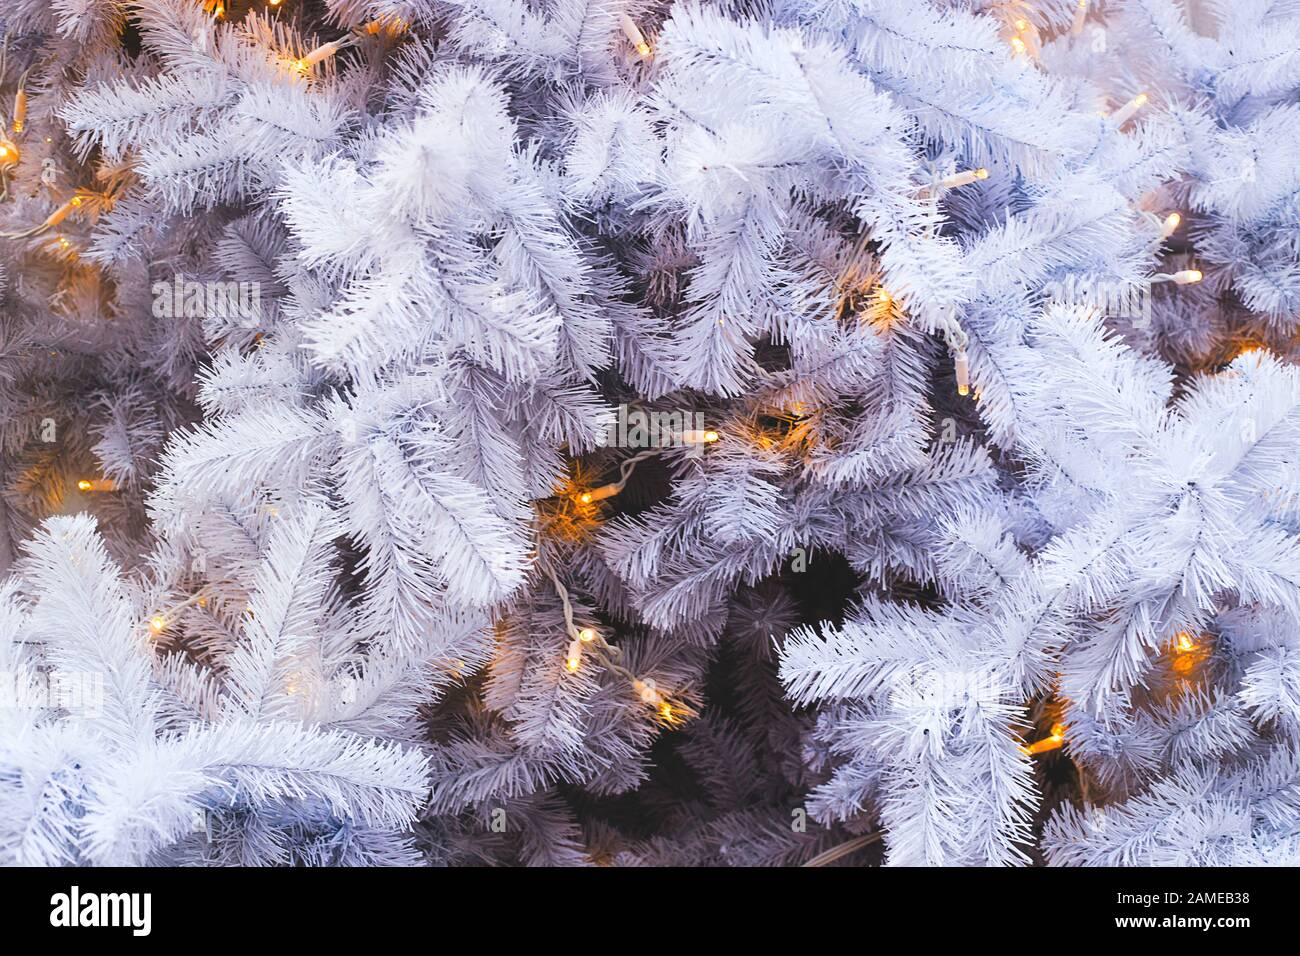 White Branches Of A Fake Plastic Christmas Tree With Lights As A Holiday Decoration No Eco Friendly Decor And Harm To Nature Concept Stock Photo Alamy